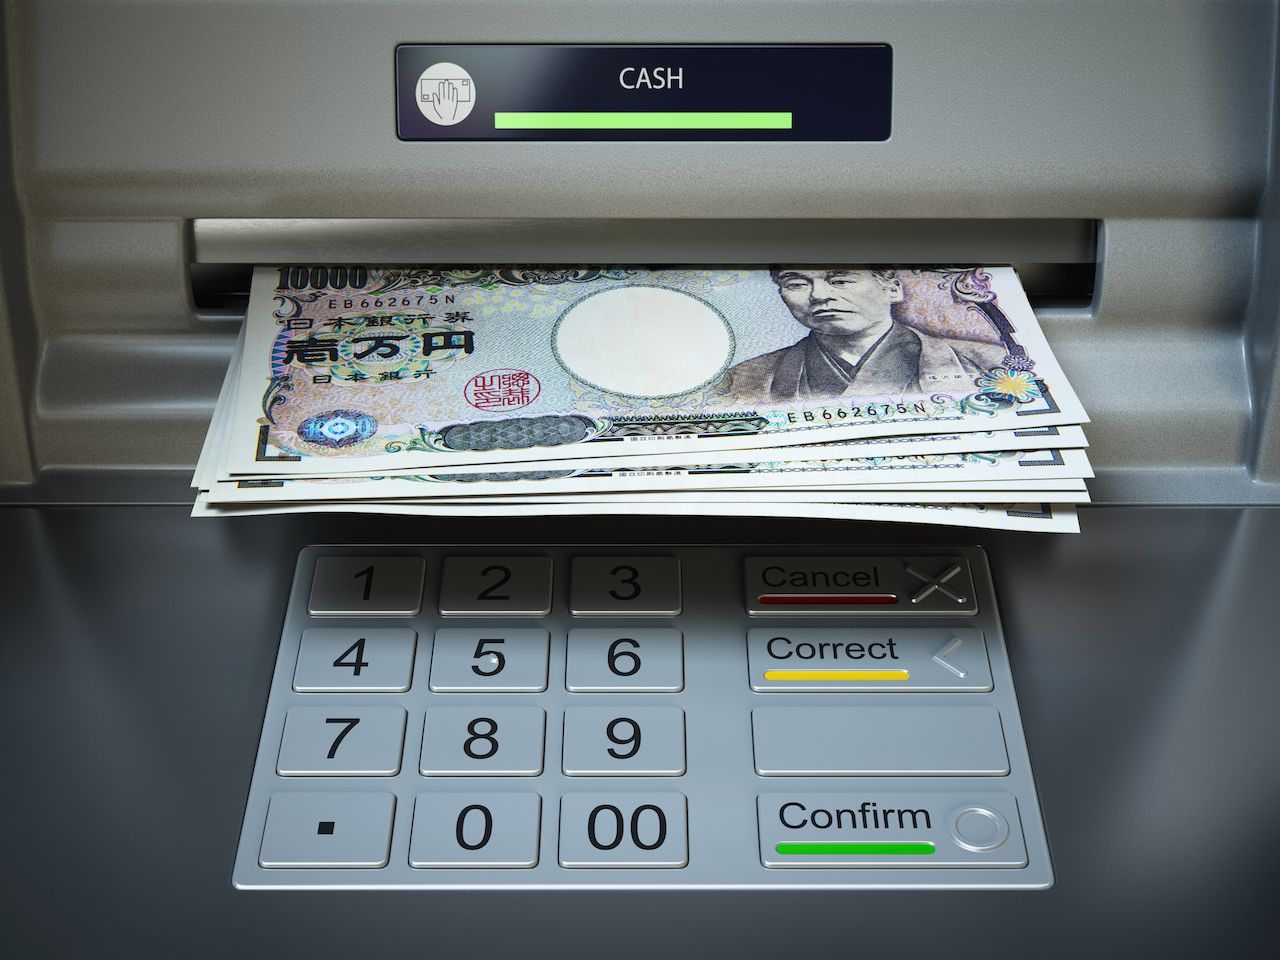 Withdrawing Japanese yen notes from an ATM